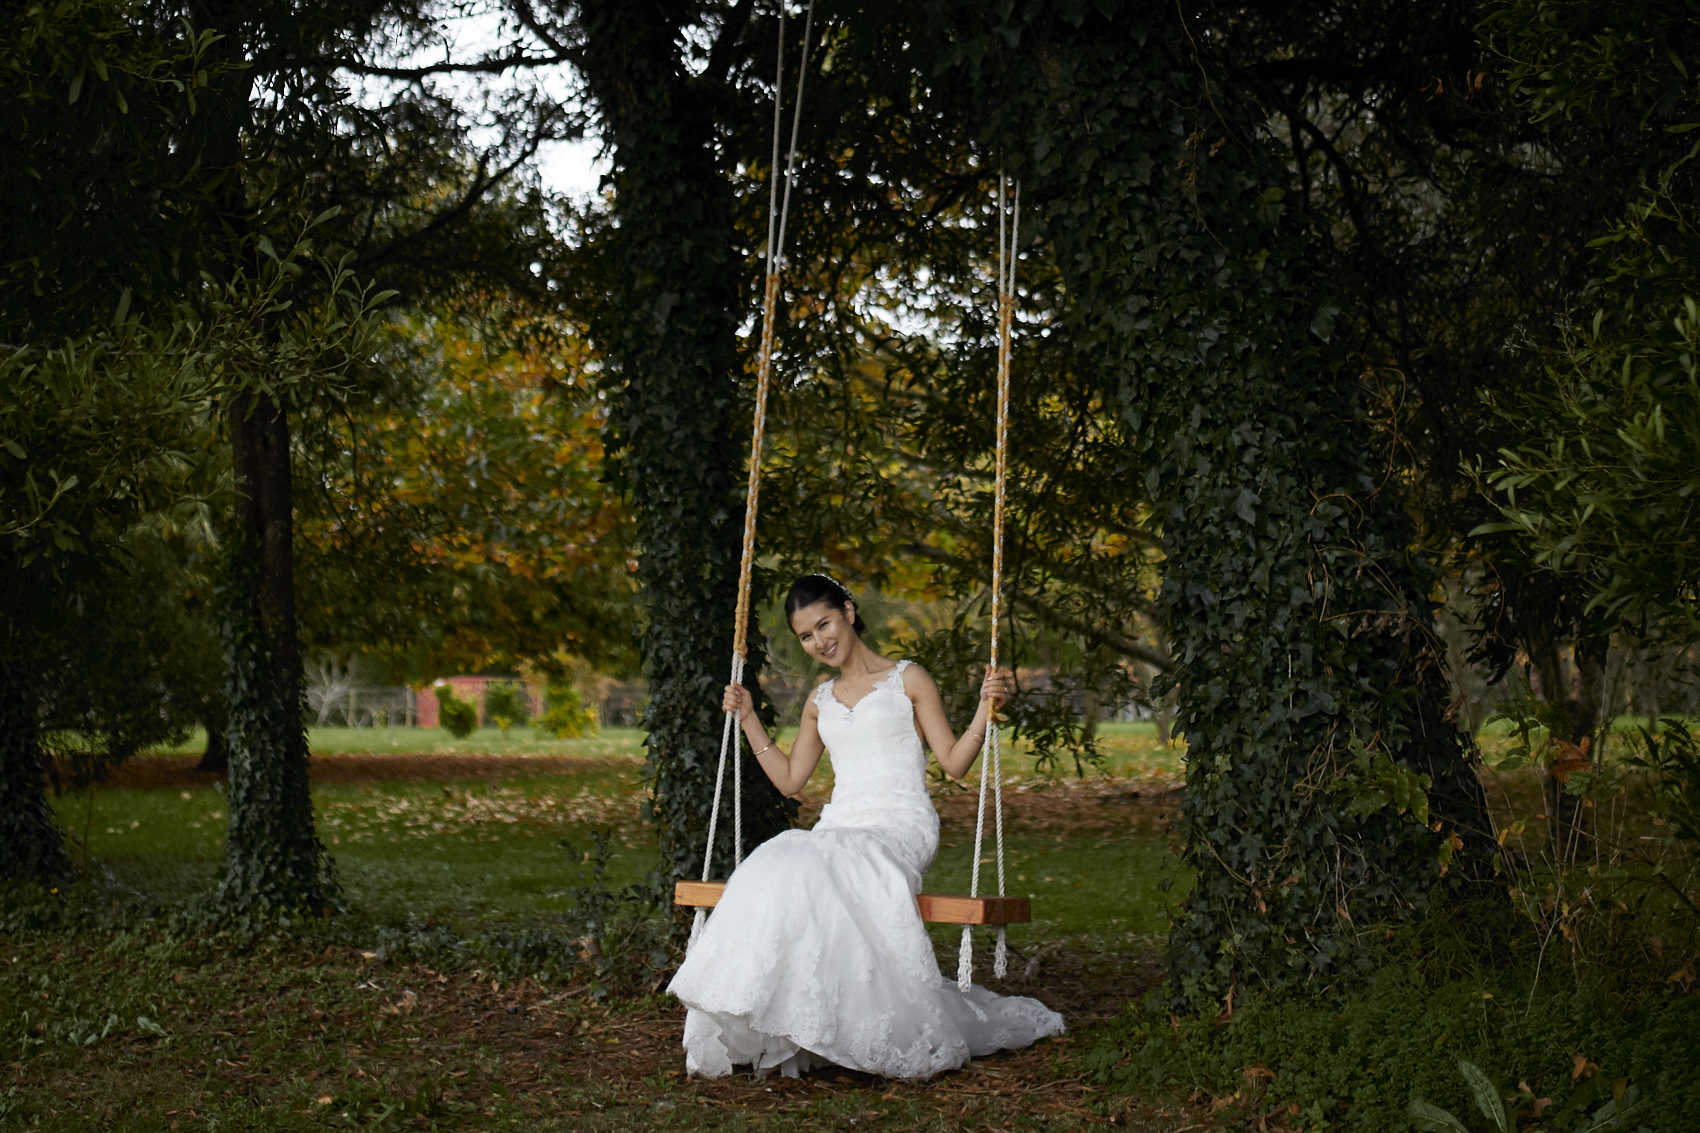 Gorgeous bride on swing